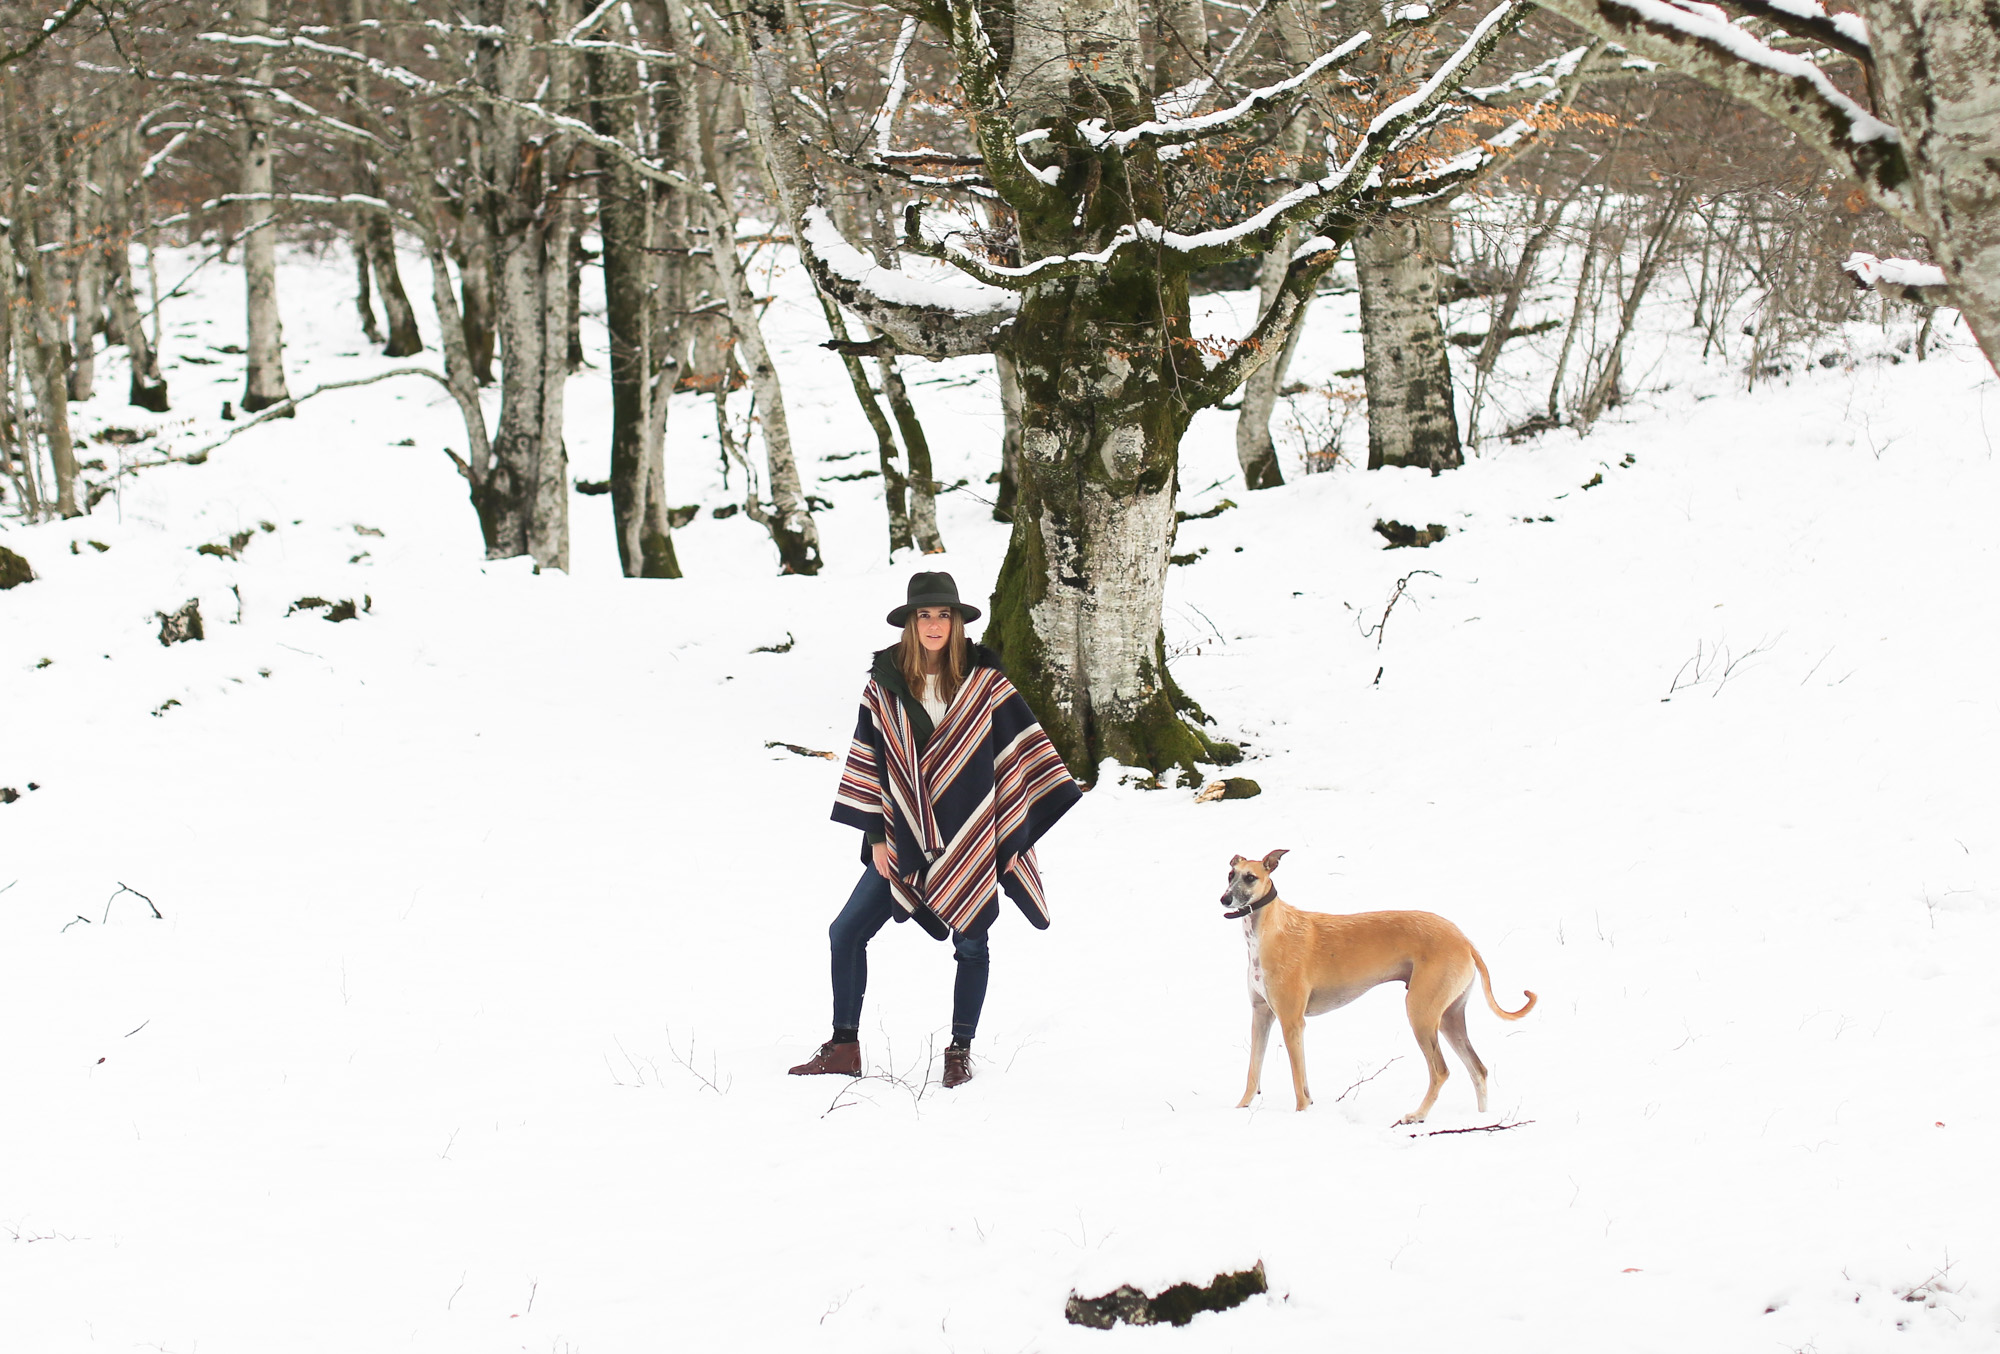 clochet_streetstyle_l'americaine_Andco_wool_poncho_panamajack_boots_snow-9